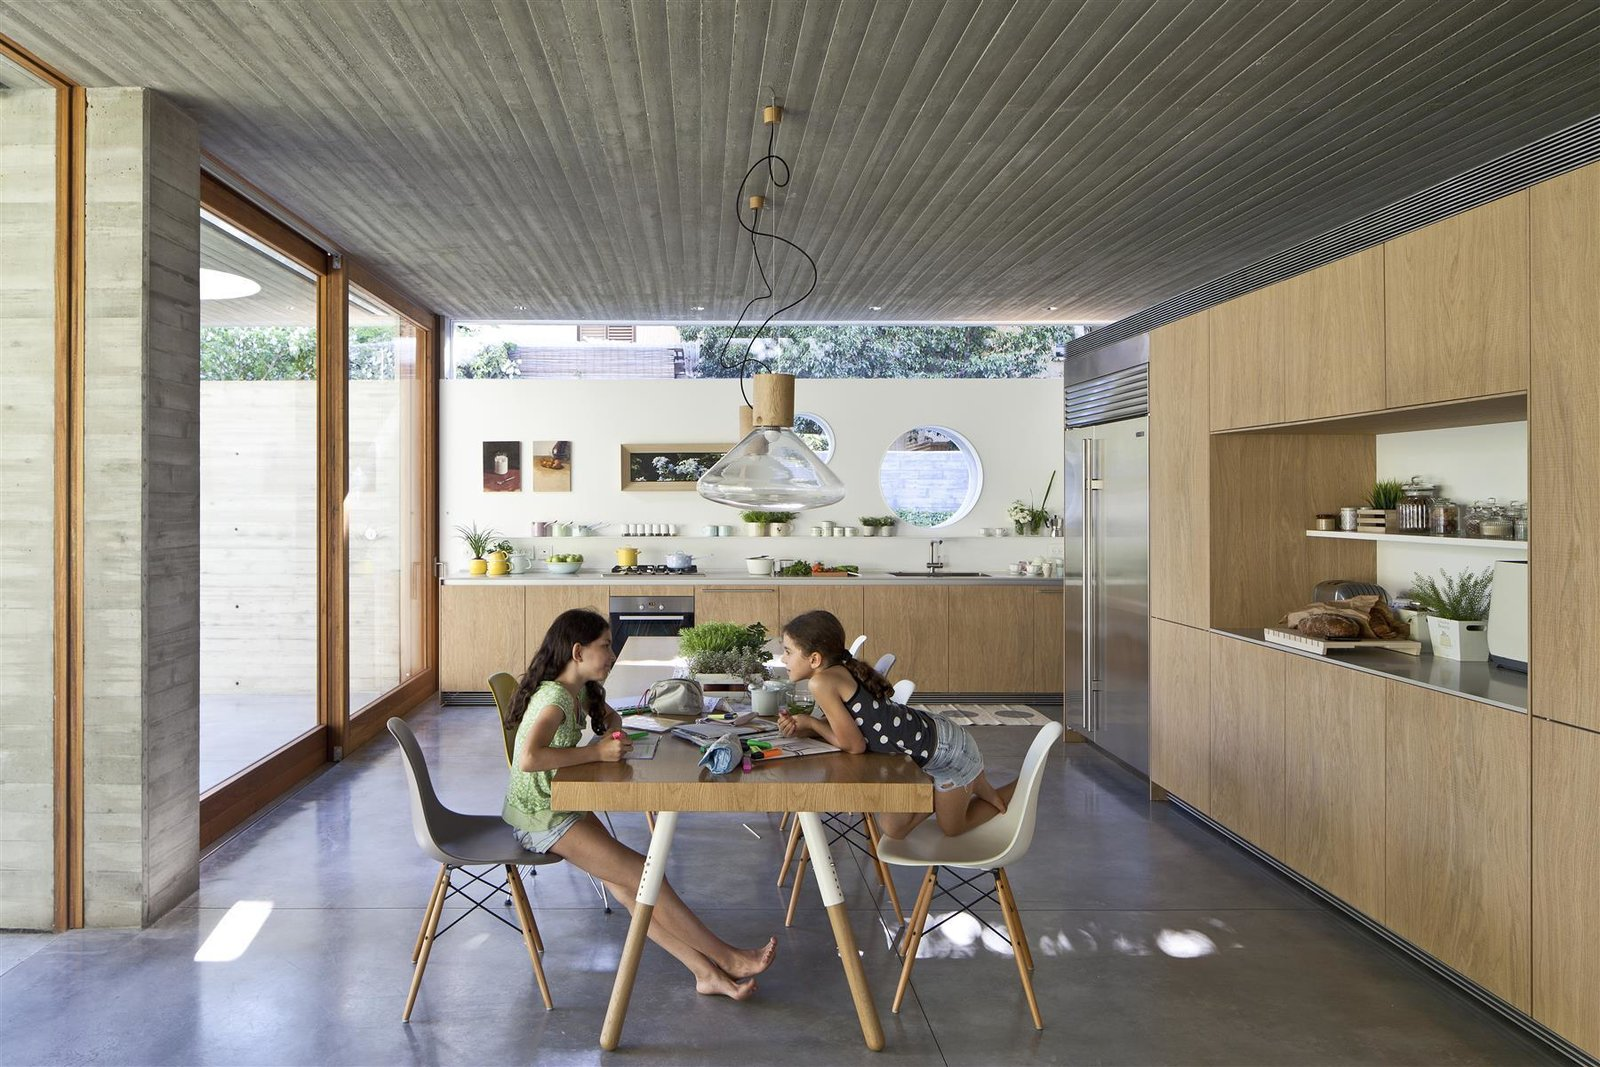 Kitchen, Wood, Concrete, Ceiling, Refrigerator, Dishwasher, Range, Cooktops, Drop In, and Open  Best Kitchen Concrete Refrigerator Wood Ceiling Drop In Photos from An Architect's Bright and Airy Family Home Thrives Within a Brutalist Concrete Structure